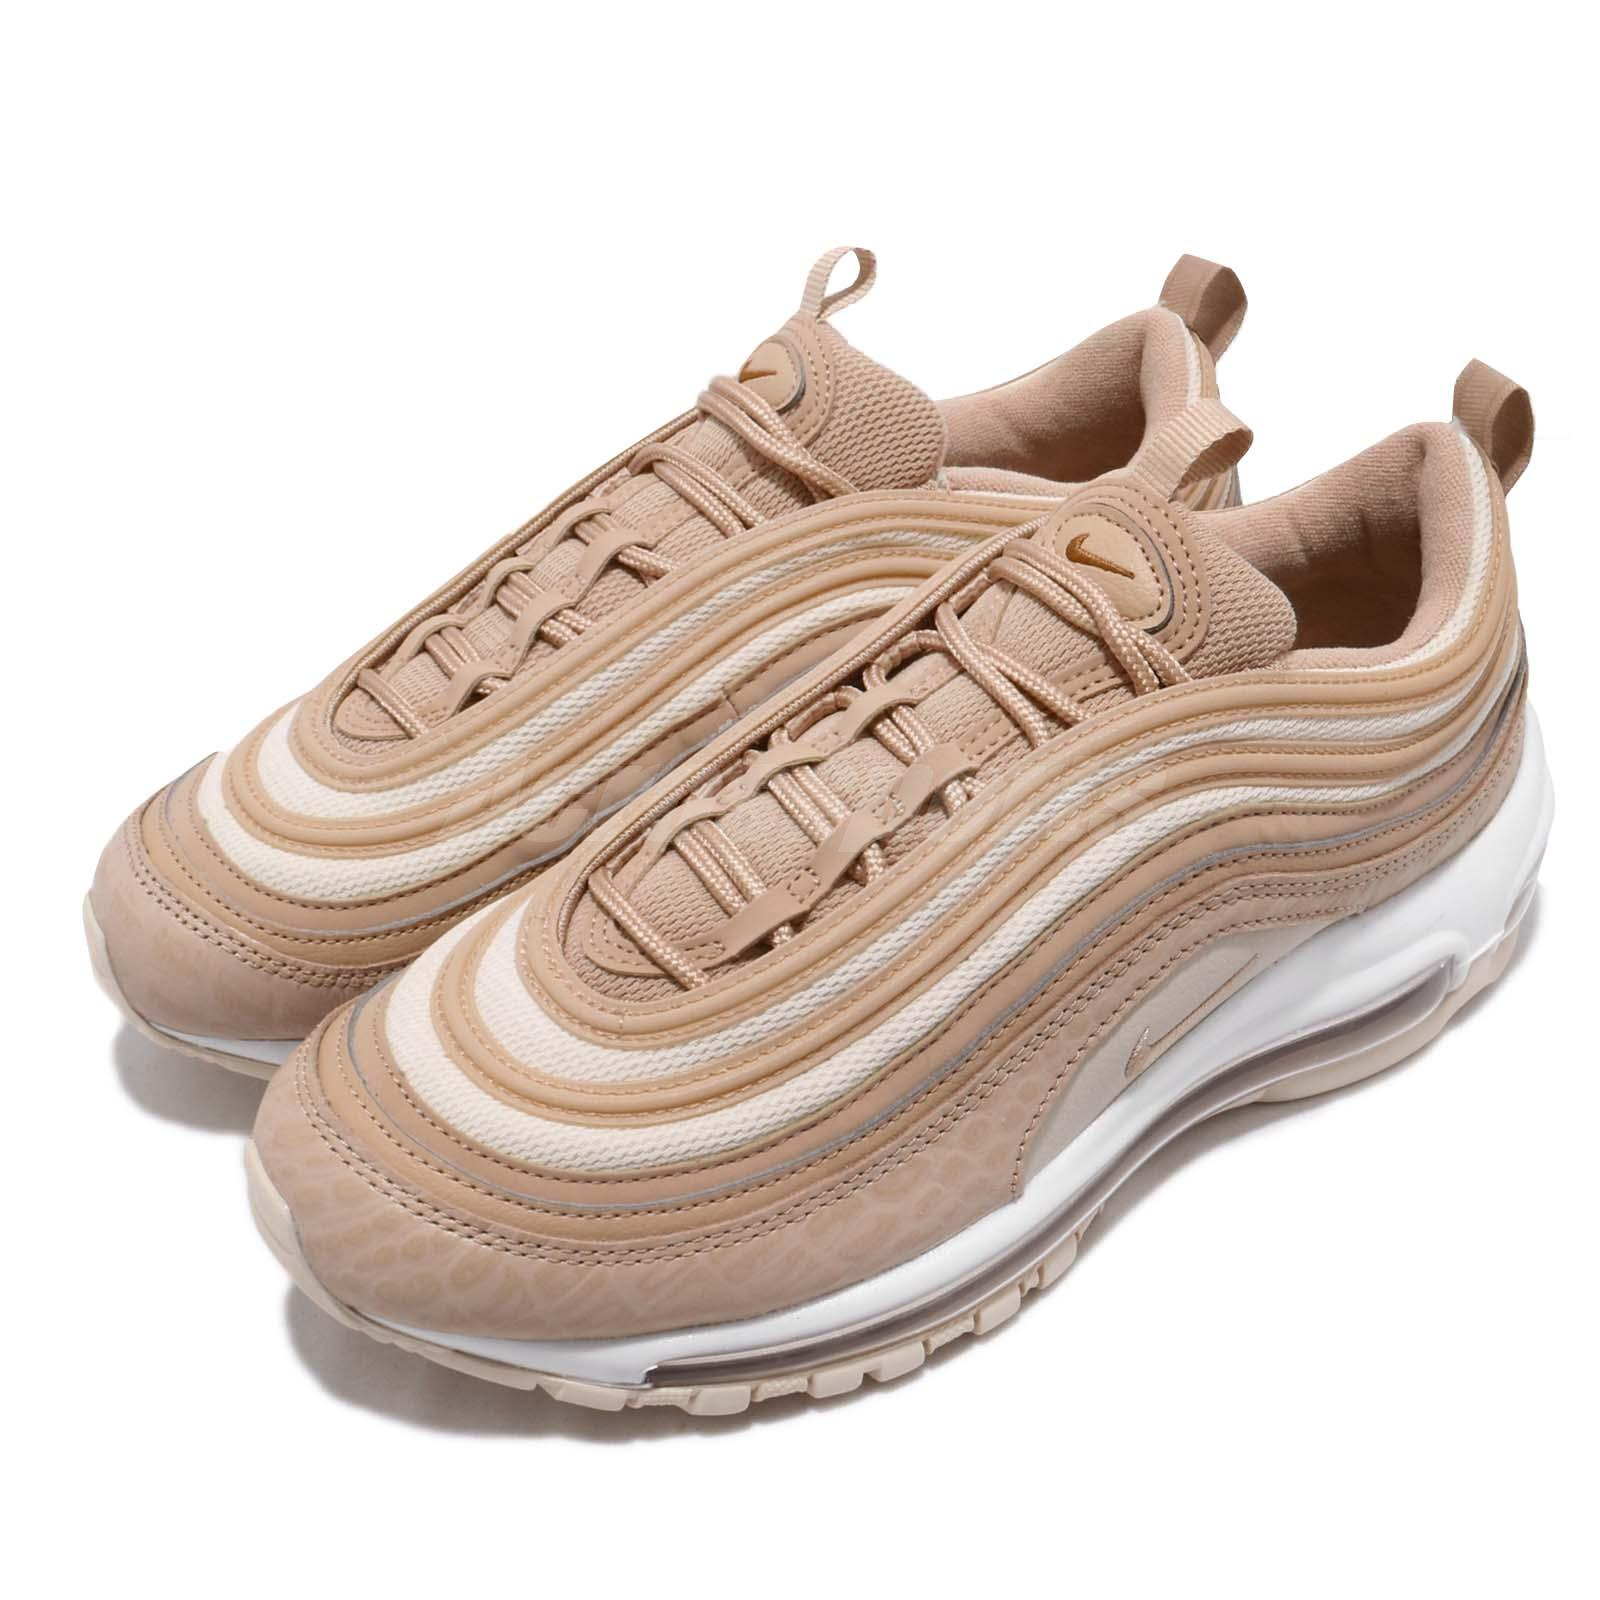 1ed054cc69464 Details about Nike Wmns Air Max 97 LX Bio Beige Womens Running Shoes NSW  Sneakers AR7621-201